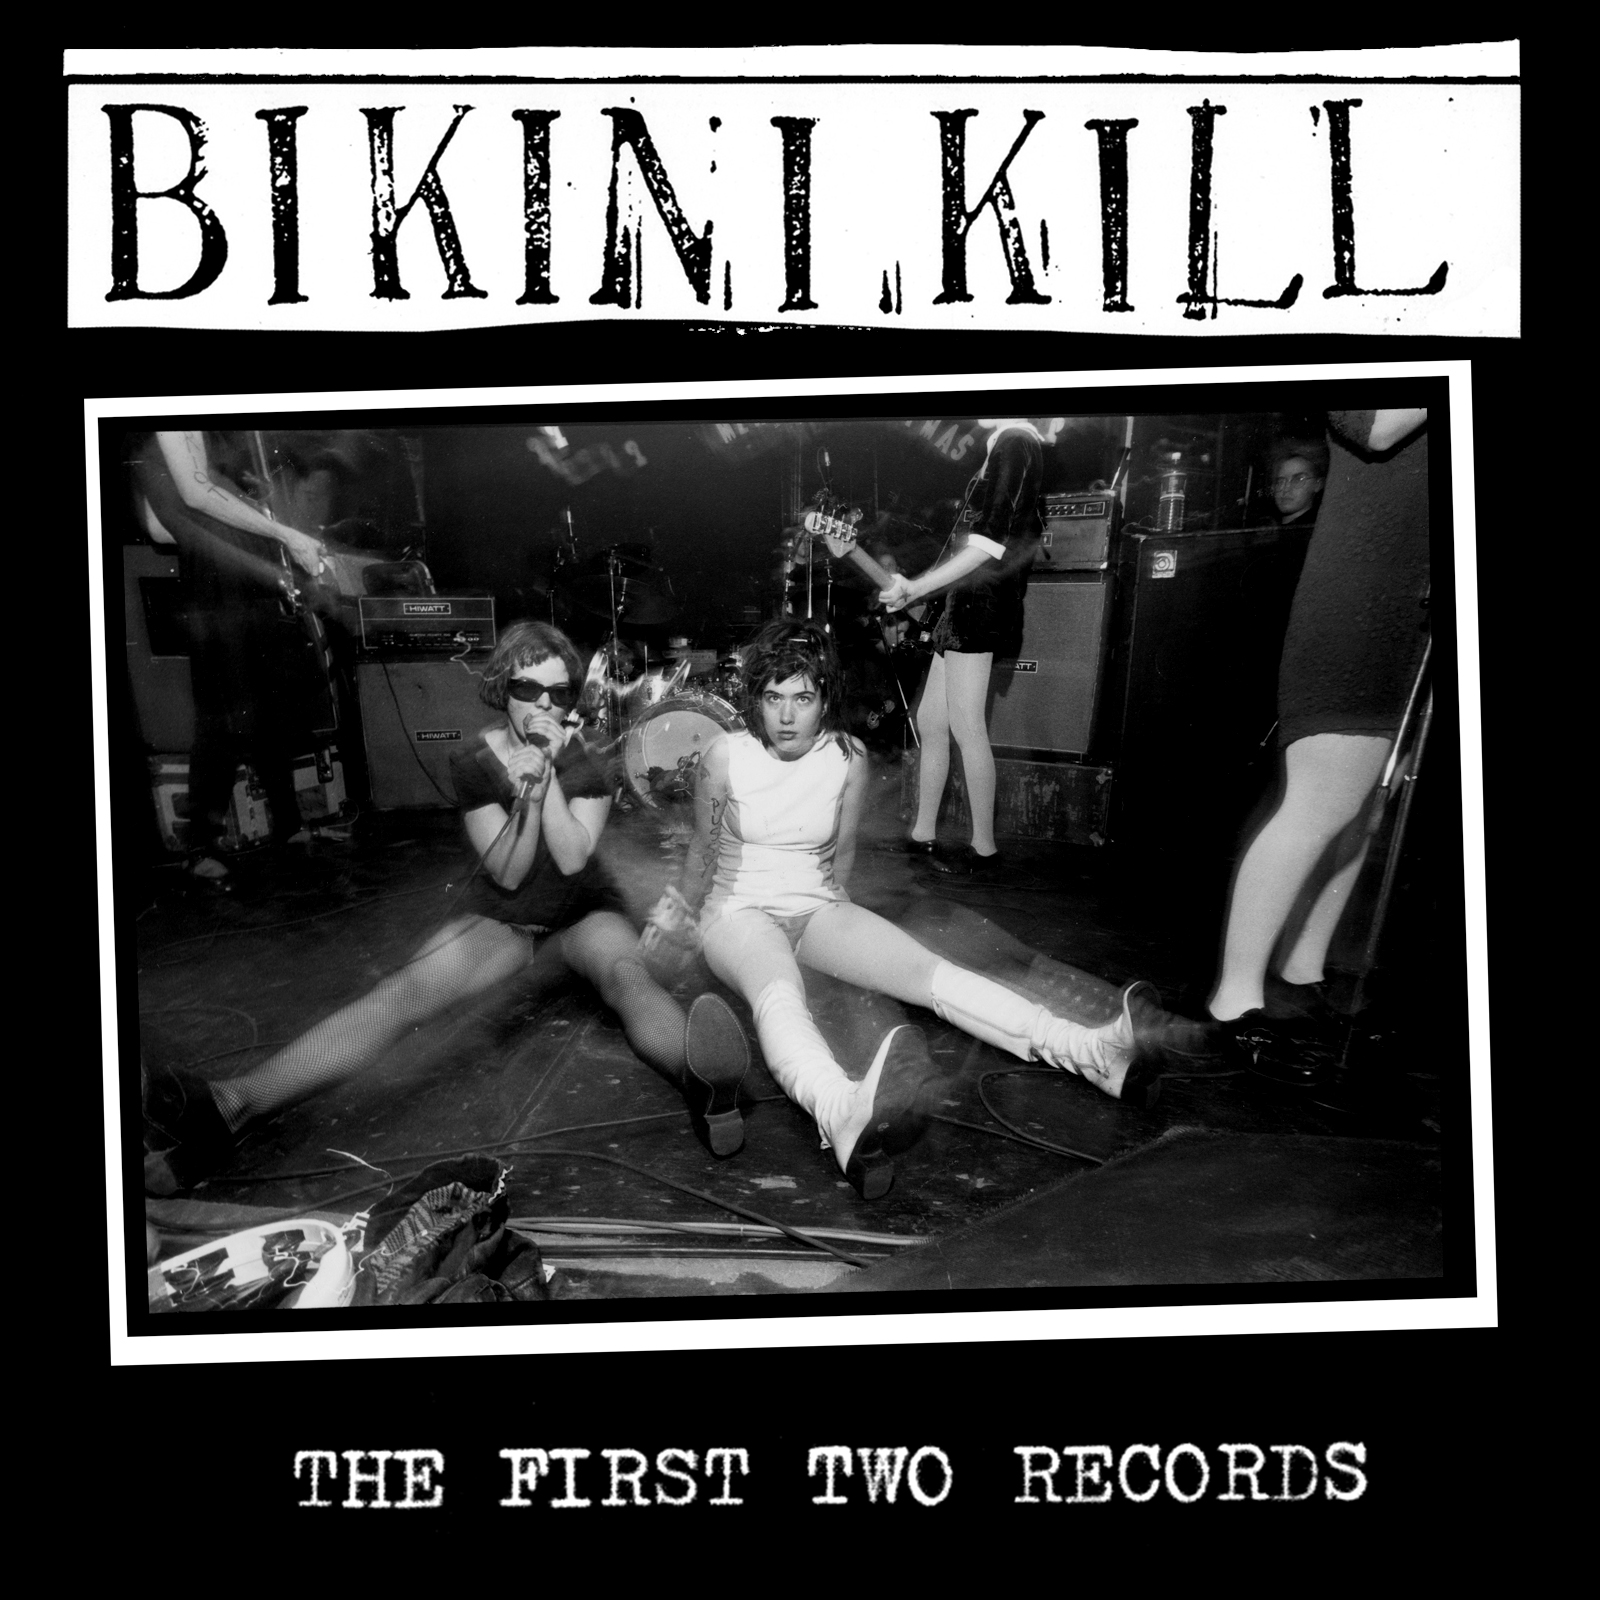 The First Two Records